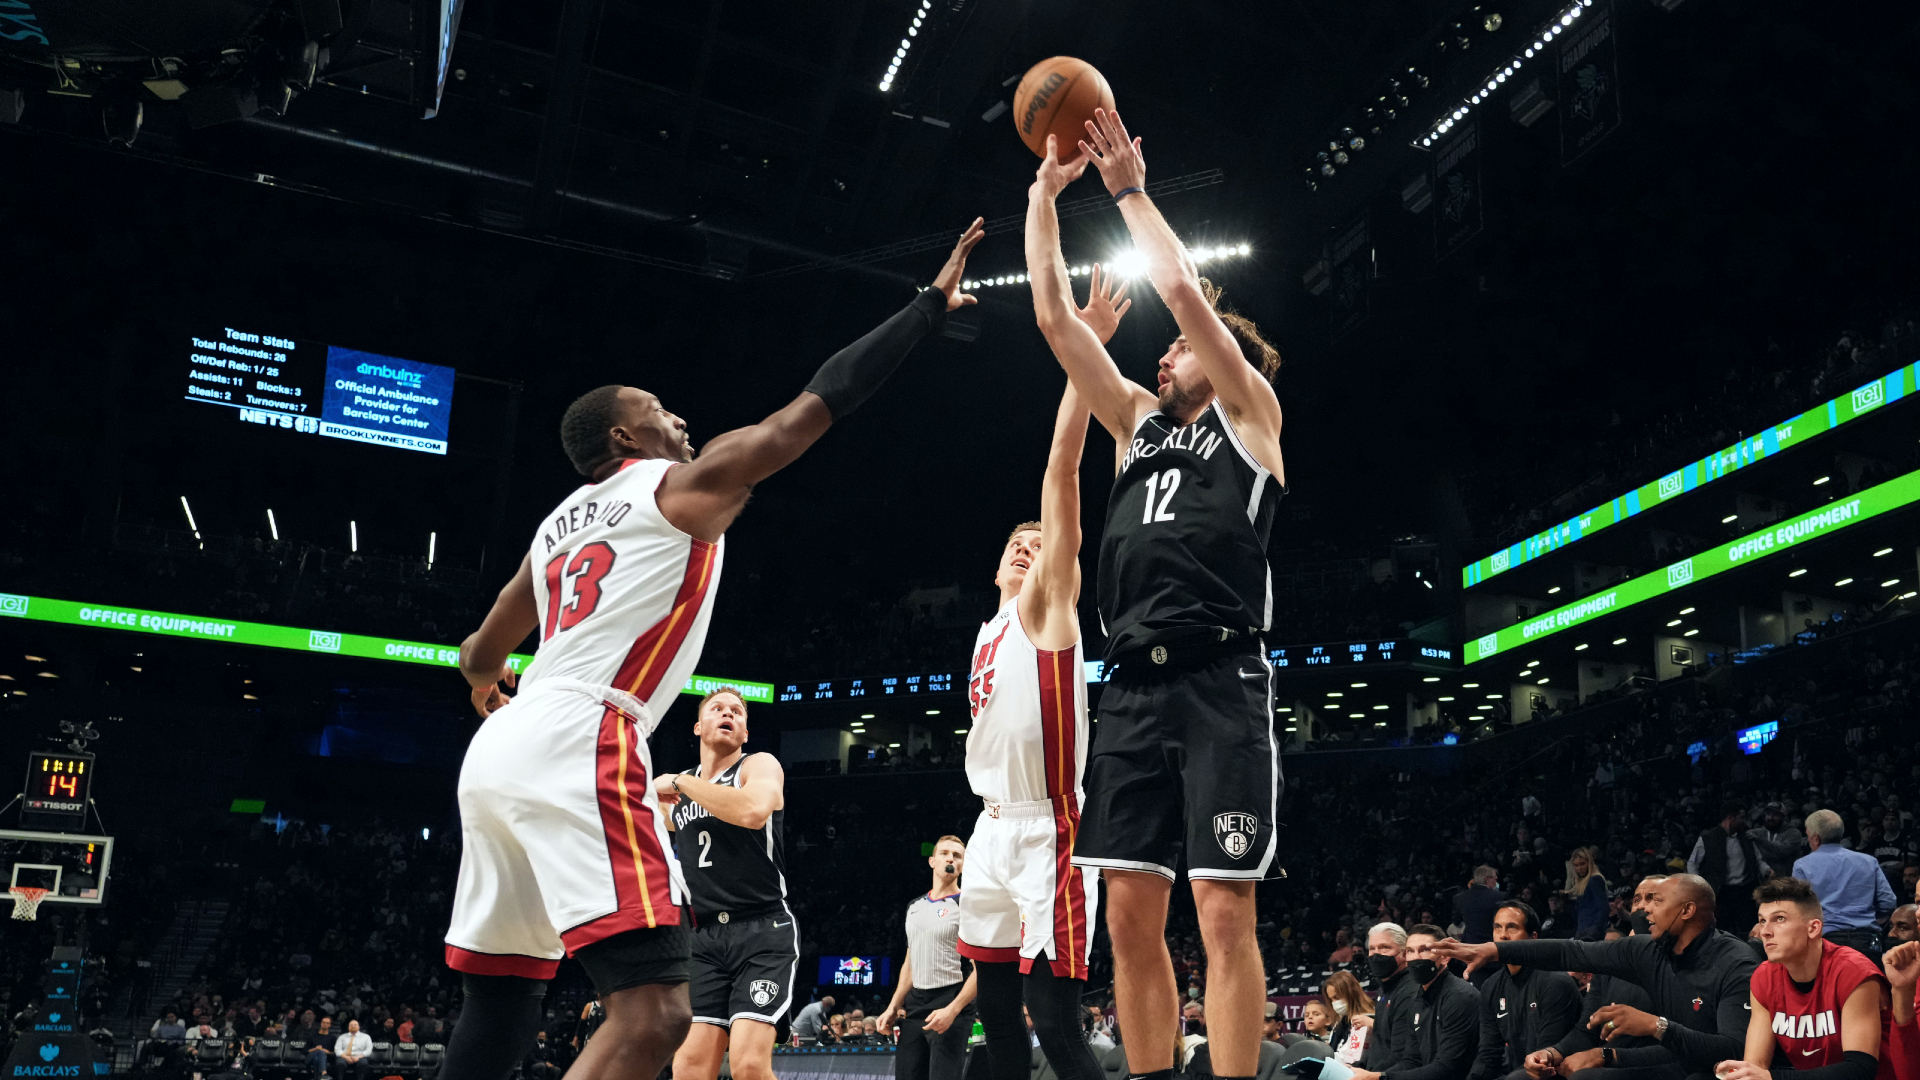 Joe Harris passes Jason Kidd as Nets' all-time leader in 3-pointers made